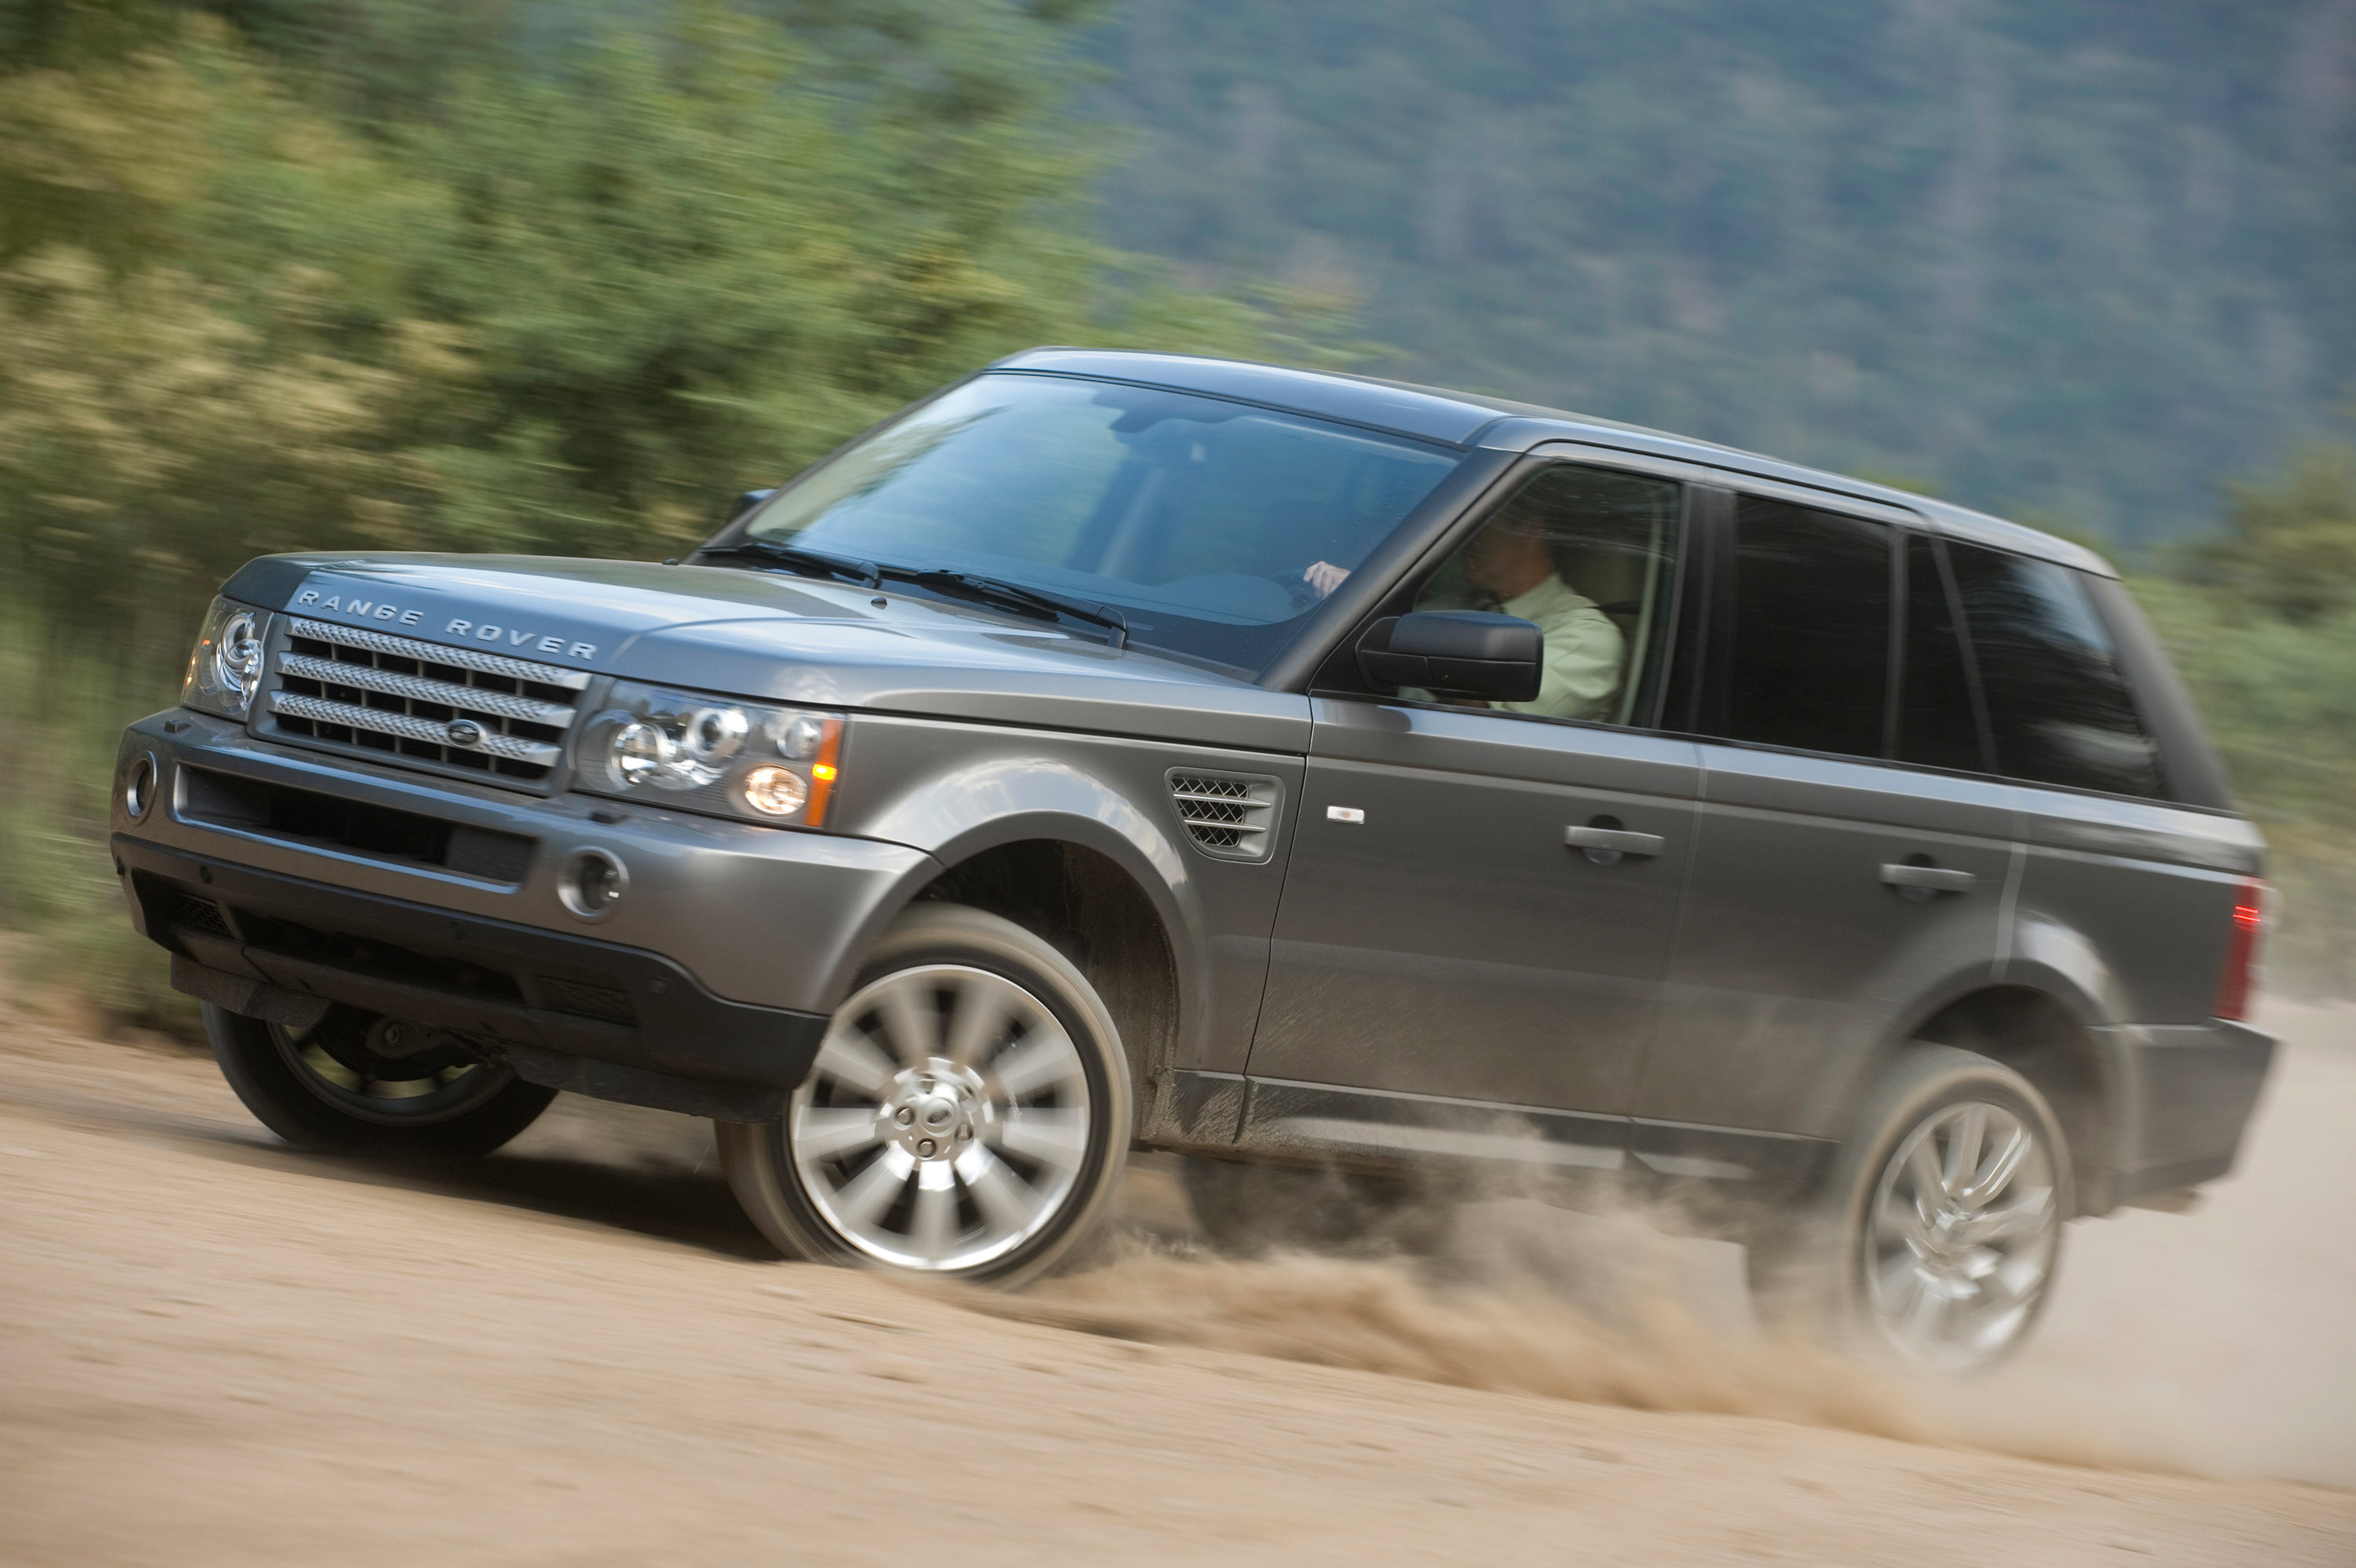 2009 Range Rover Sport Supercharged Picture 10982